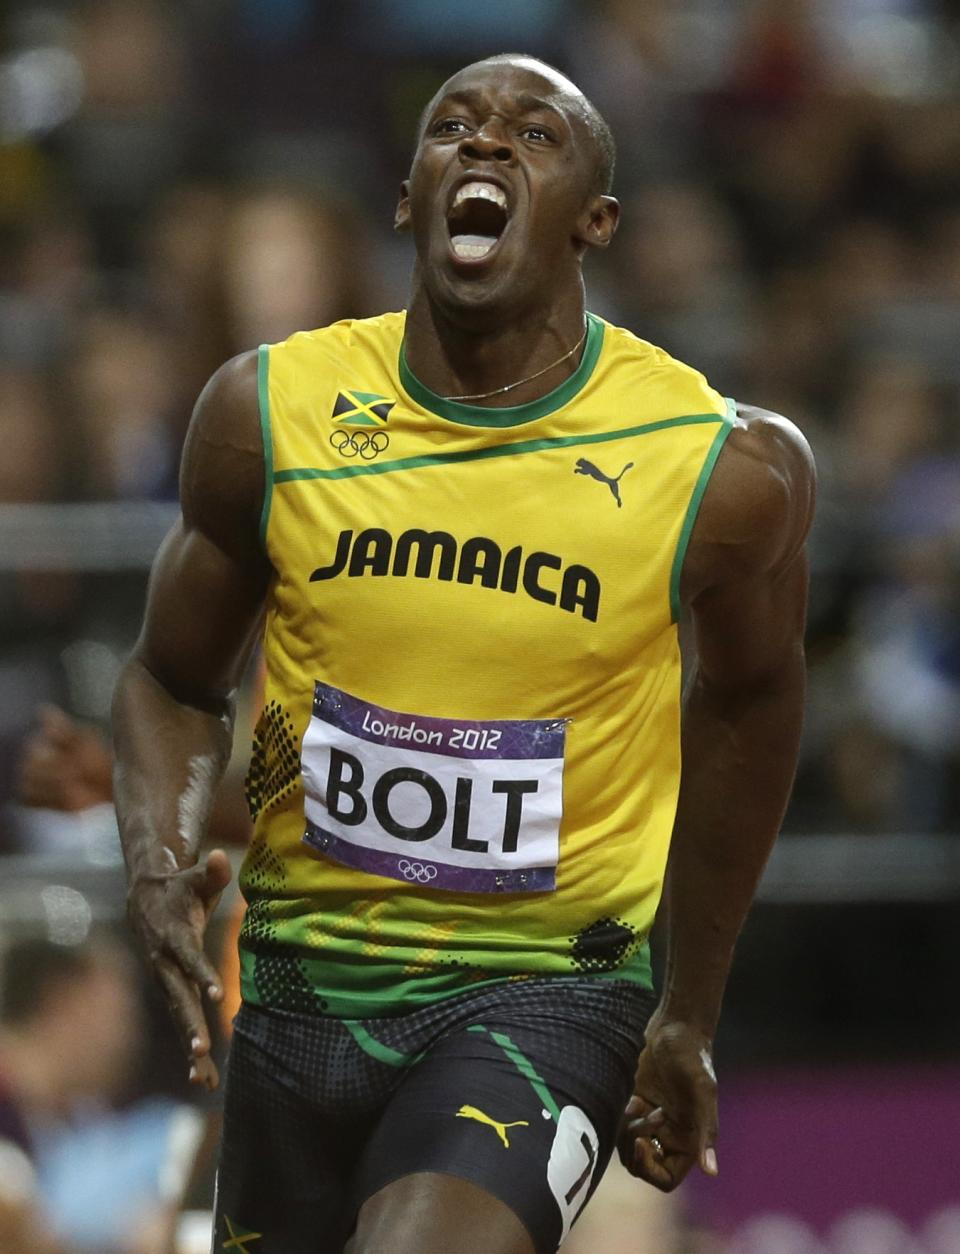 Jamaica's Usain Bolt celebrates after winning the men's 100-meter final race during the athletics competition in the Olympic Stadium at the 2012 Summer Olympics, London, Sunday, Aug. 5, 2012. (AP Photo/Marcio Jose Sanchez)